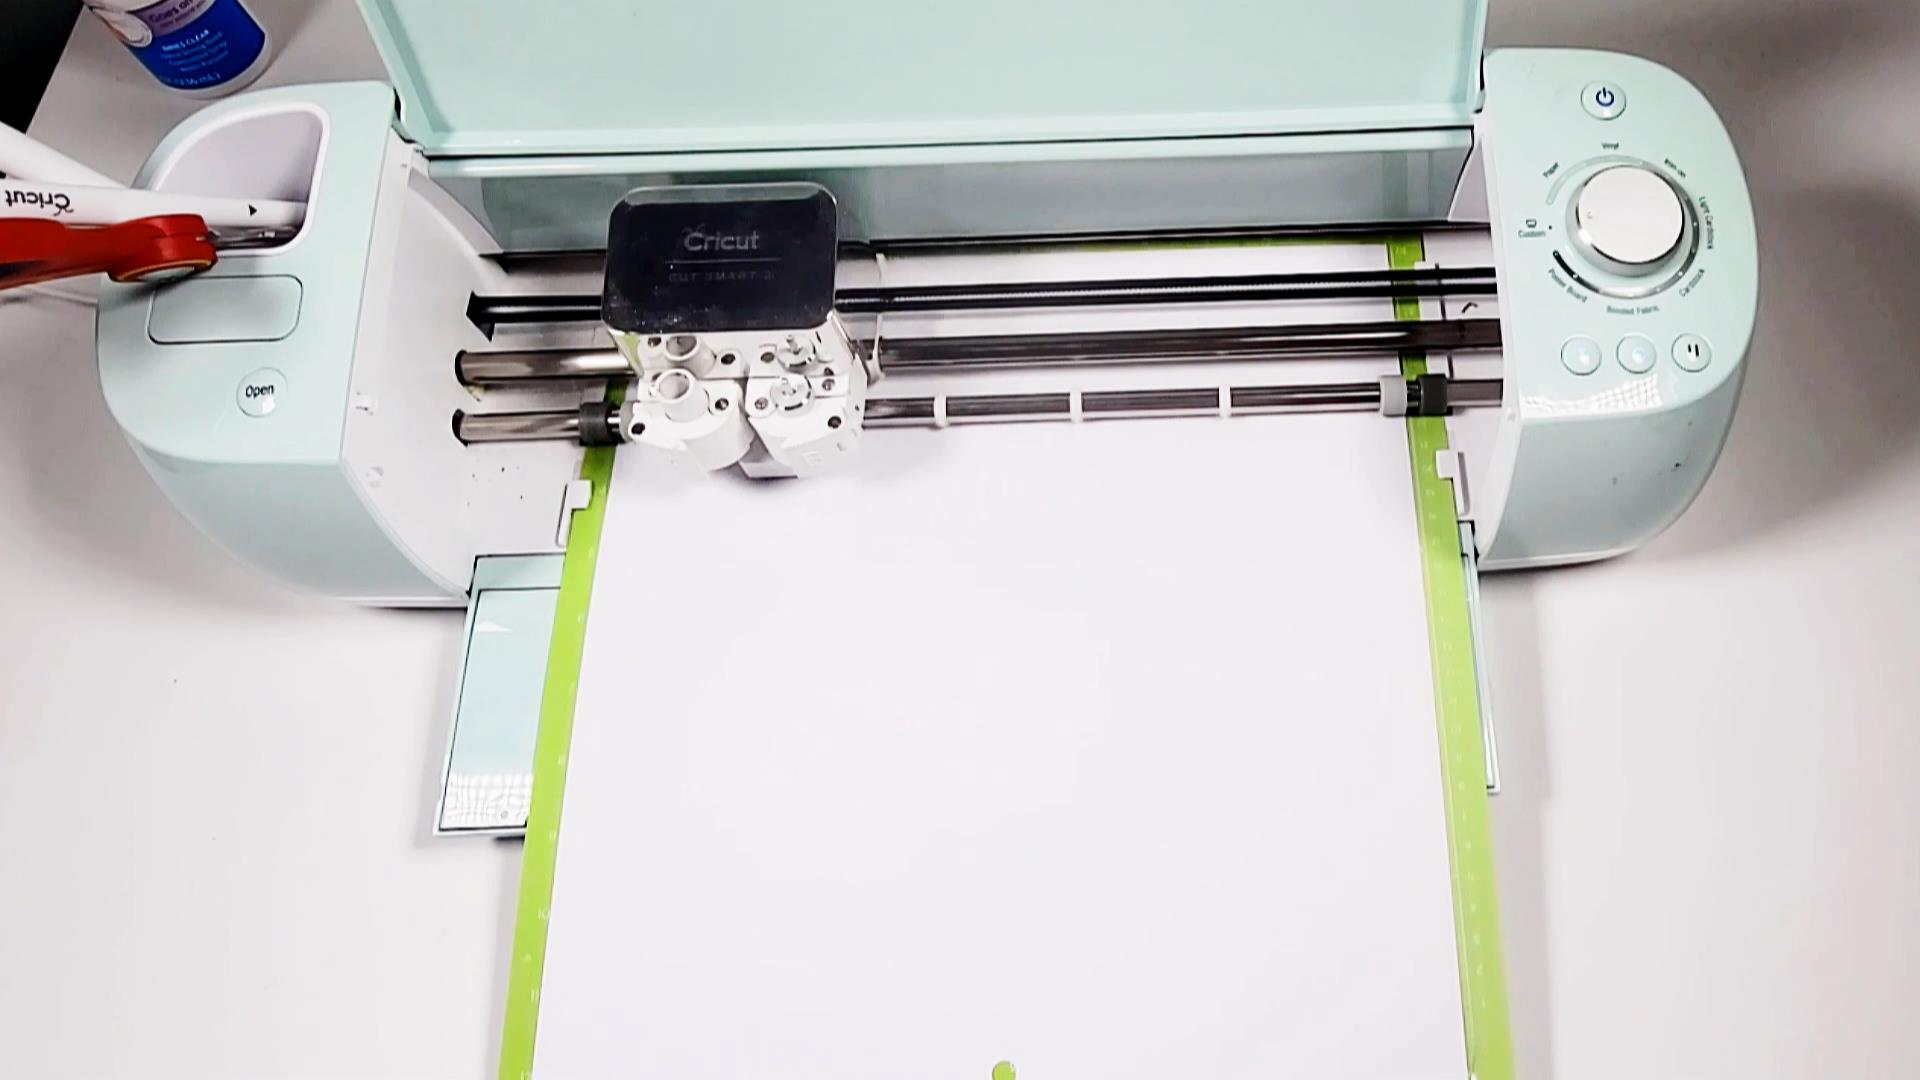 cricut machine cutting cardstock for a layered paper shadow box for father's day